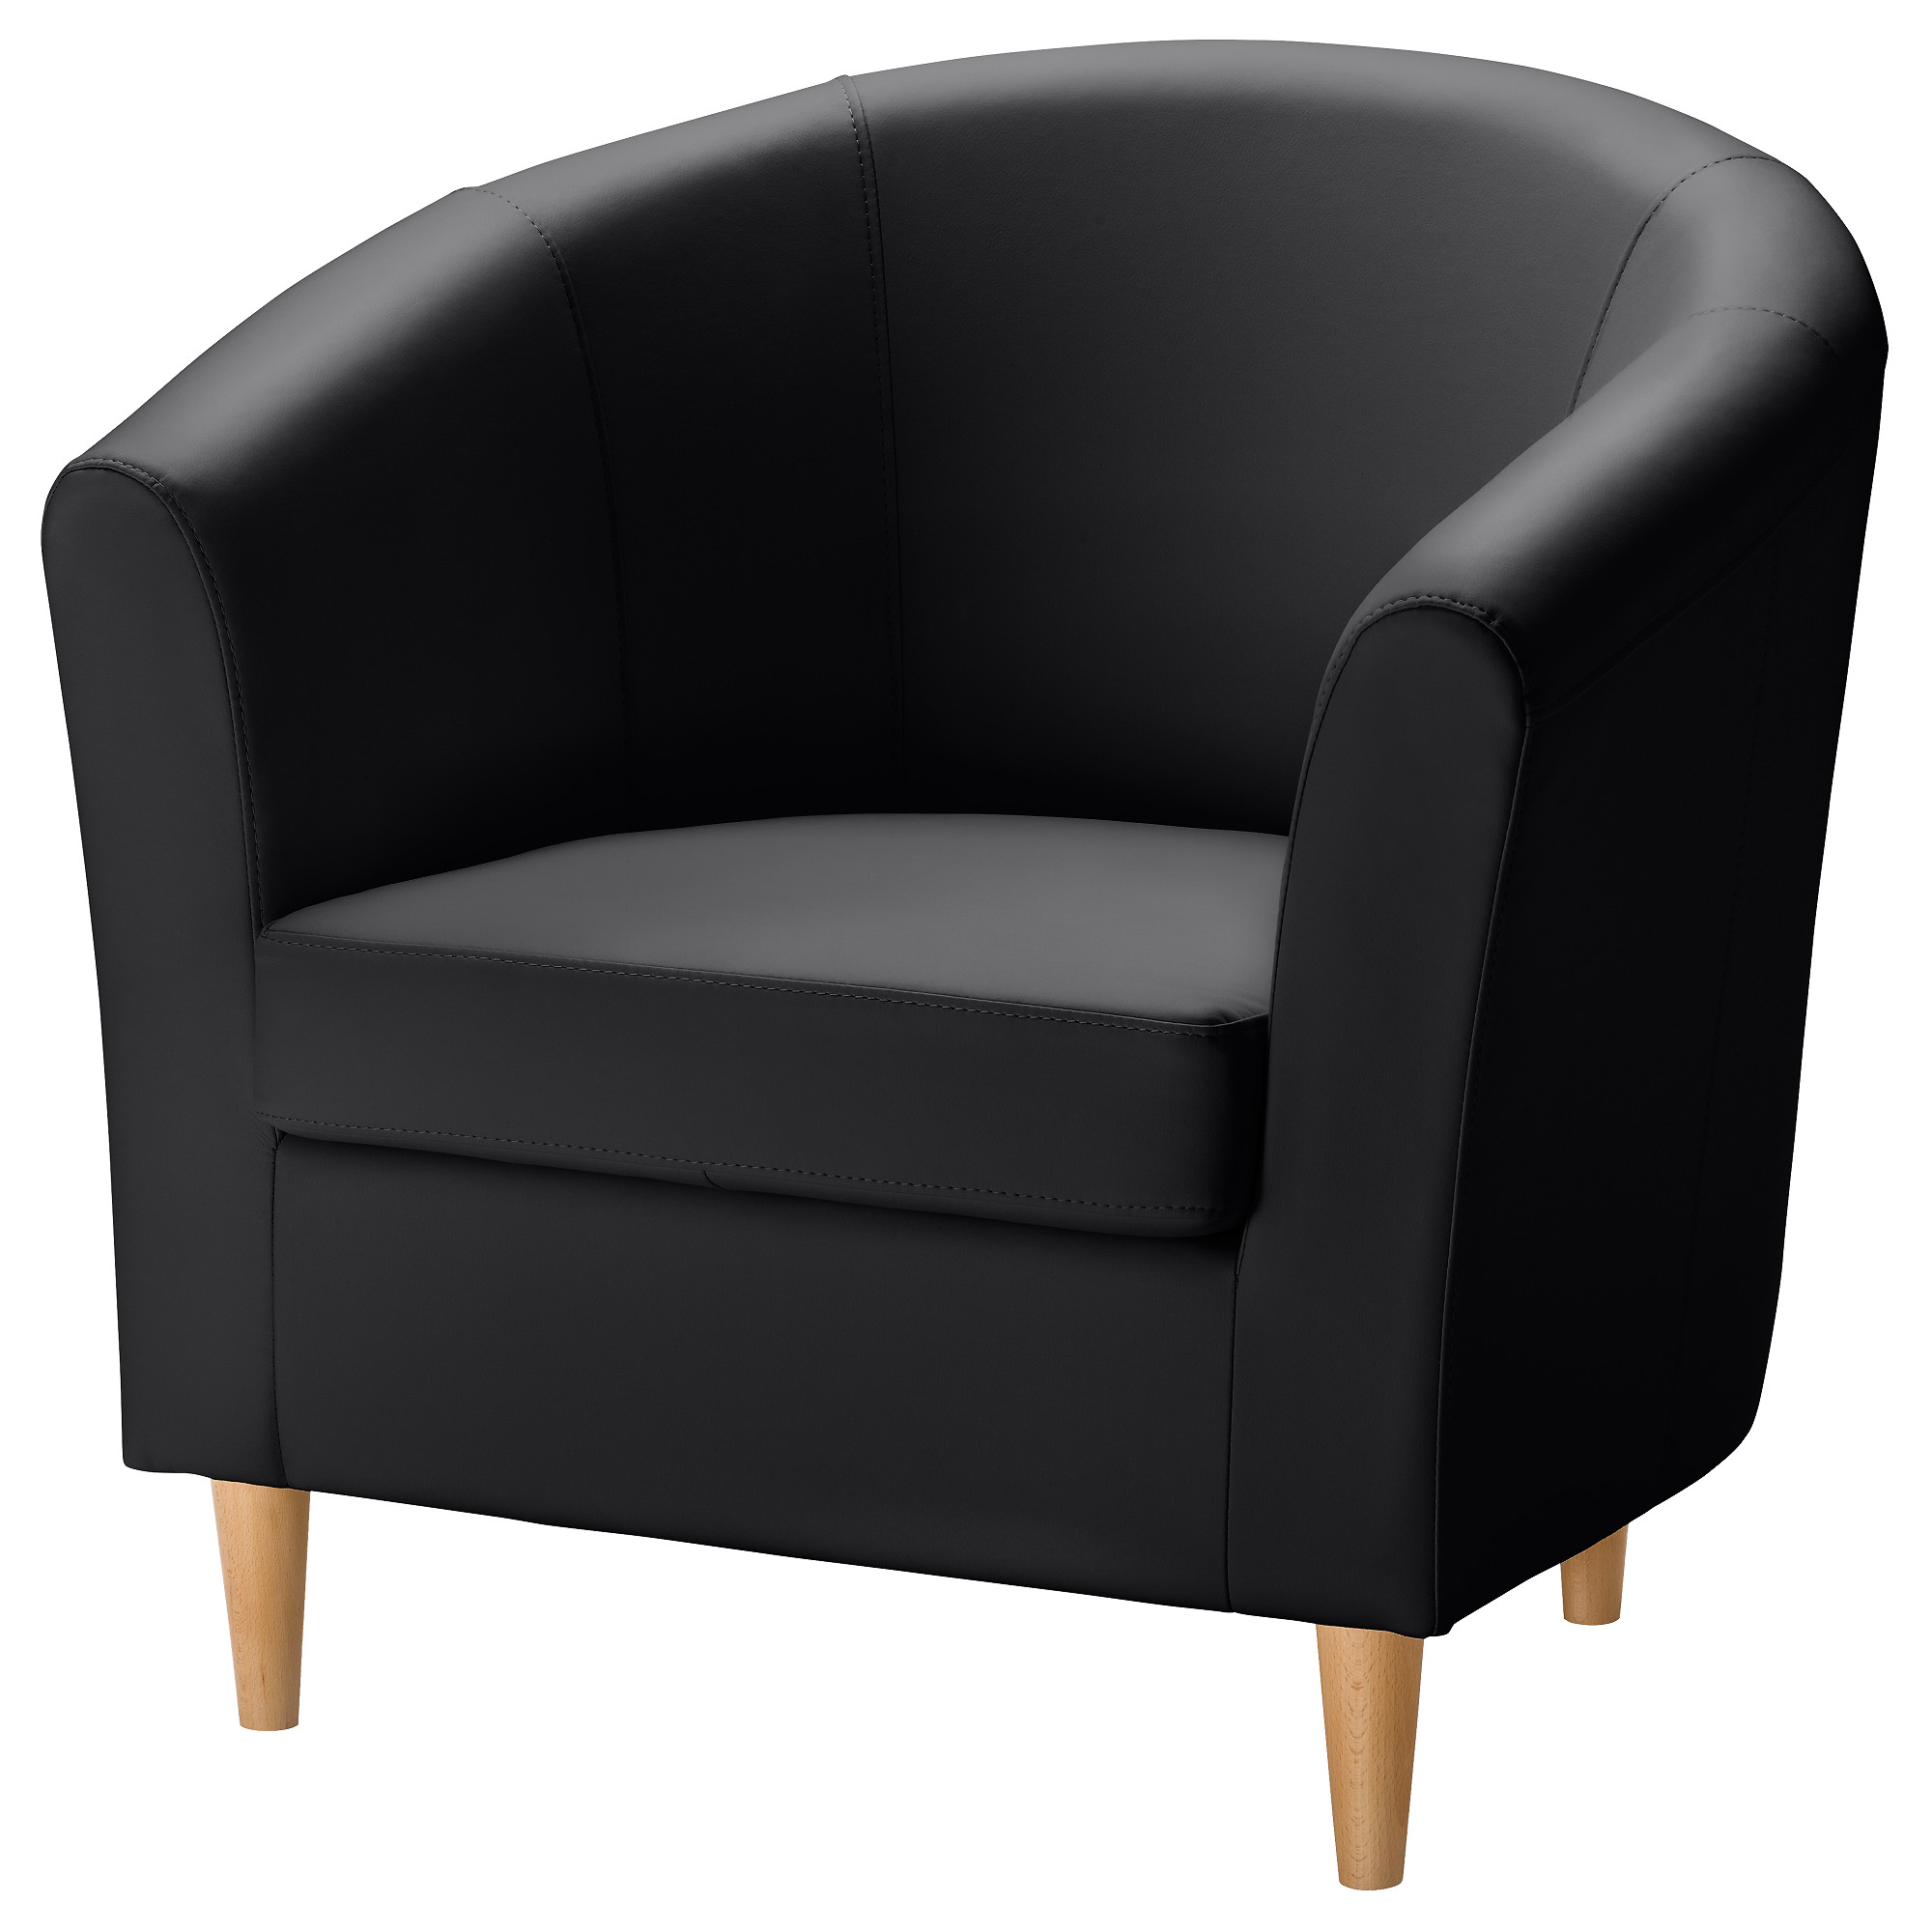 fauteuil convertible 1 place ikea id e inspirante pour la conception de la maison. Black Bedroom Furniture Sets. Home Design Ideas